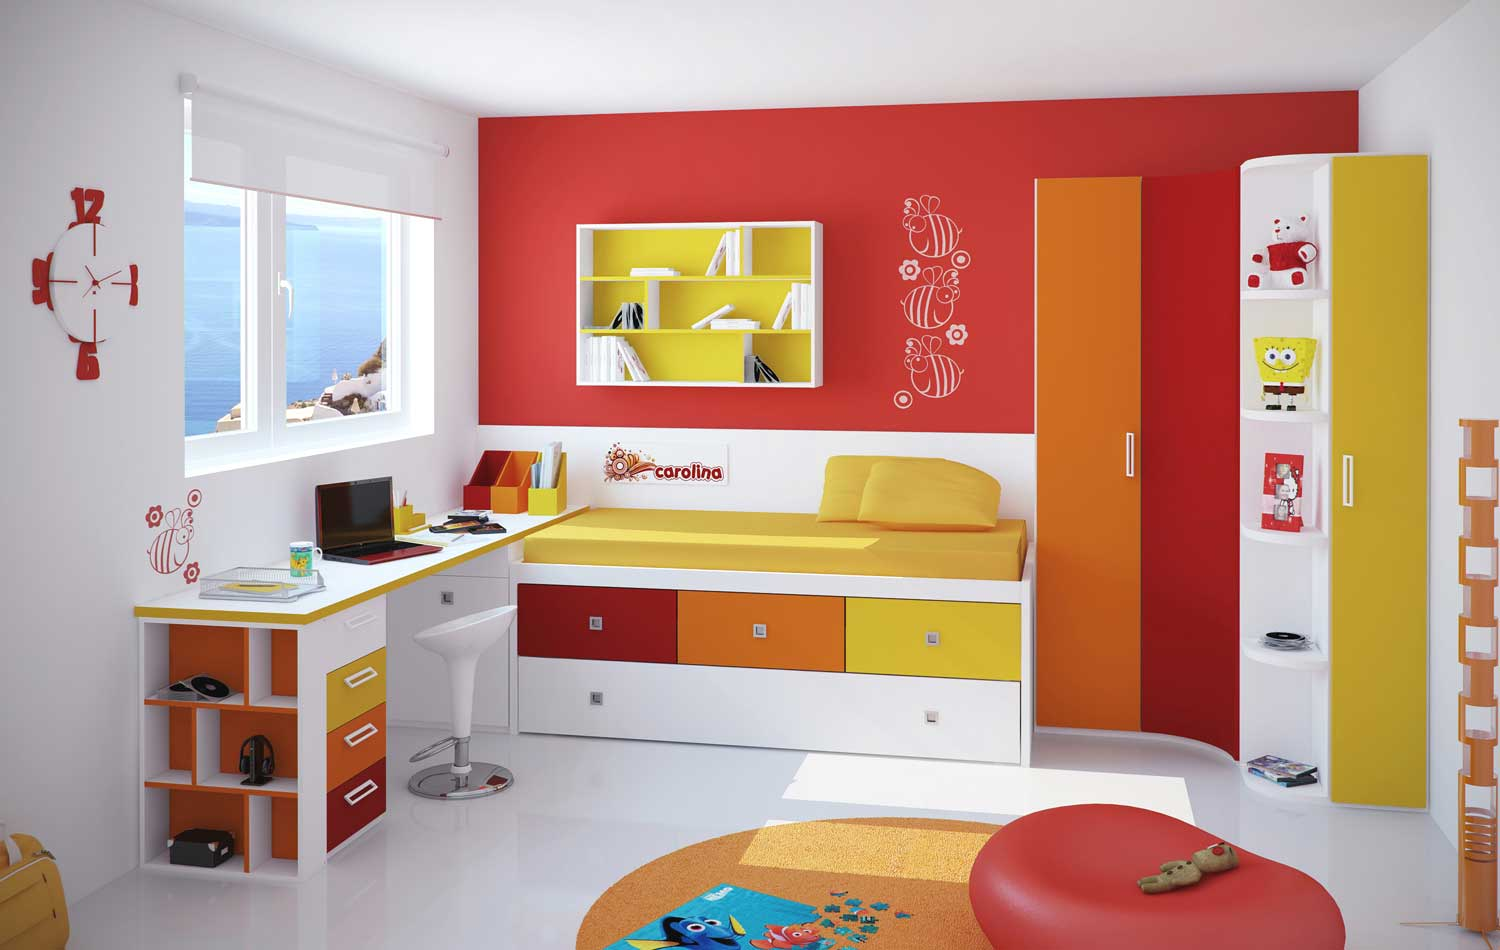 Modern Artistic Small Cozy Rooms For Kids Bedroom Design Ideas My Home Deco Mag